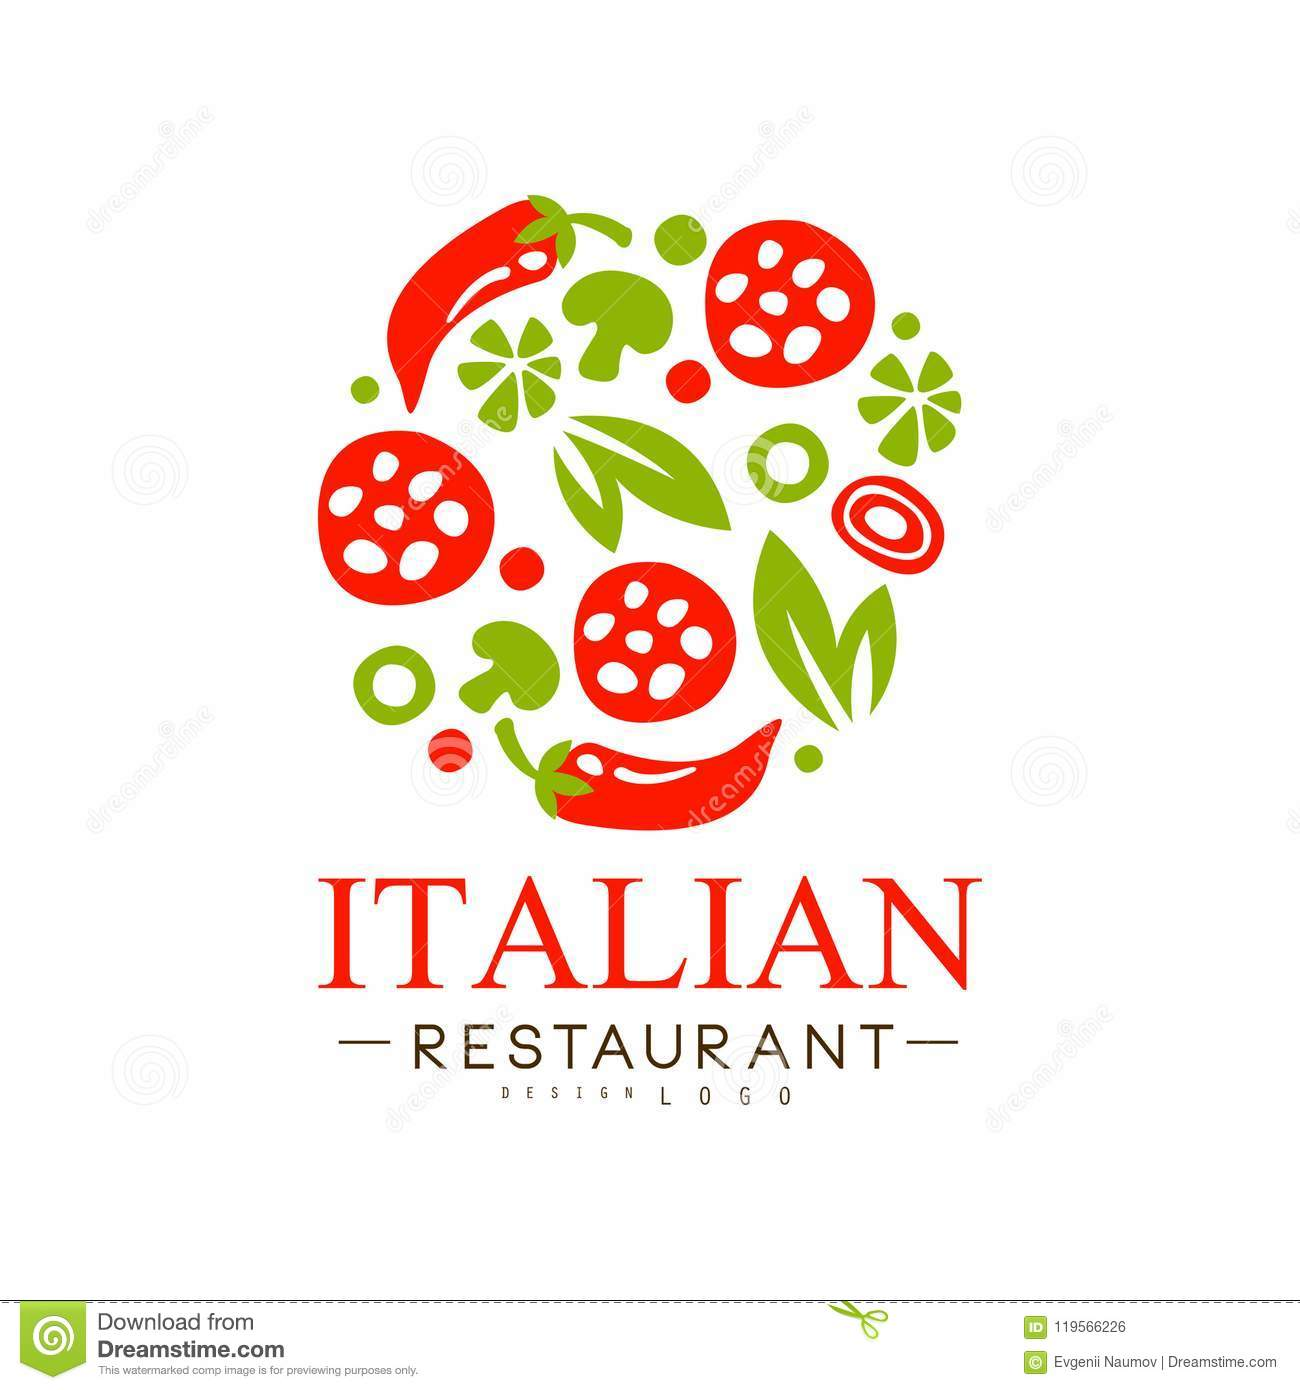 Italian Restaurant Logo Design Authentic Traditional Continental Food Label Vector Illustration I On A White Background Stock Vector Illustration Of Culture Banner 119566226